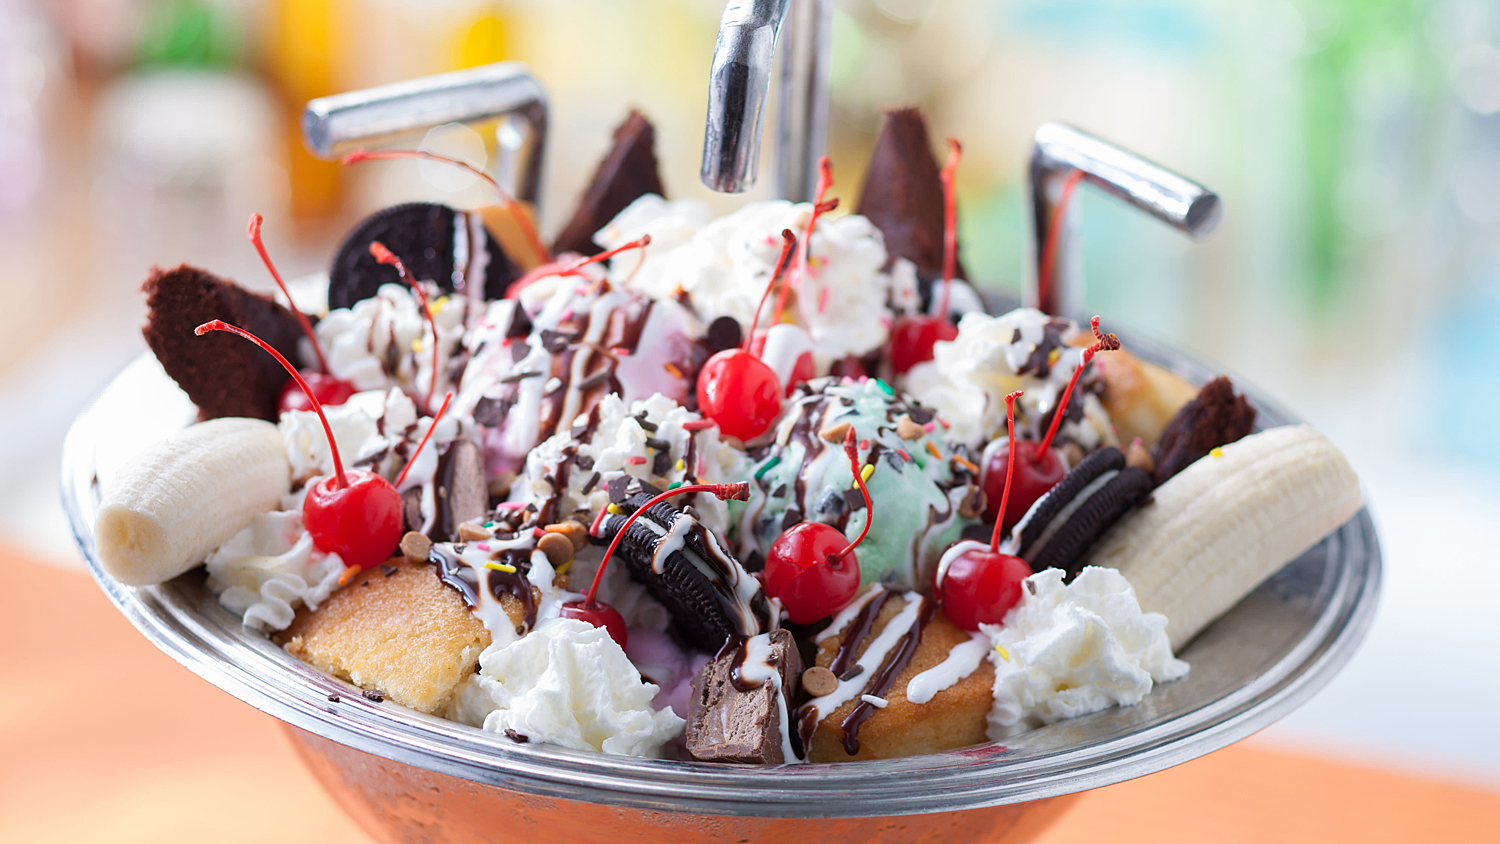 Disneyland Kitchen Sink Ice Cream